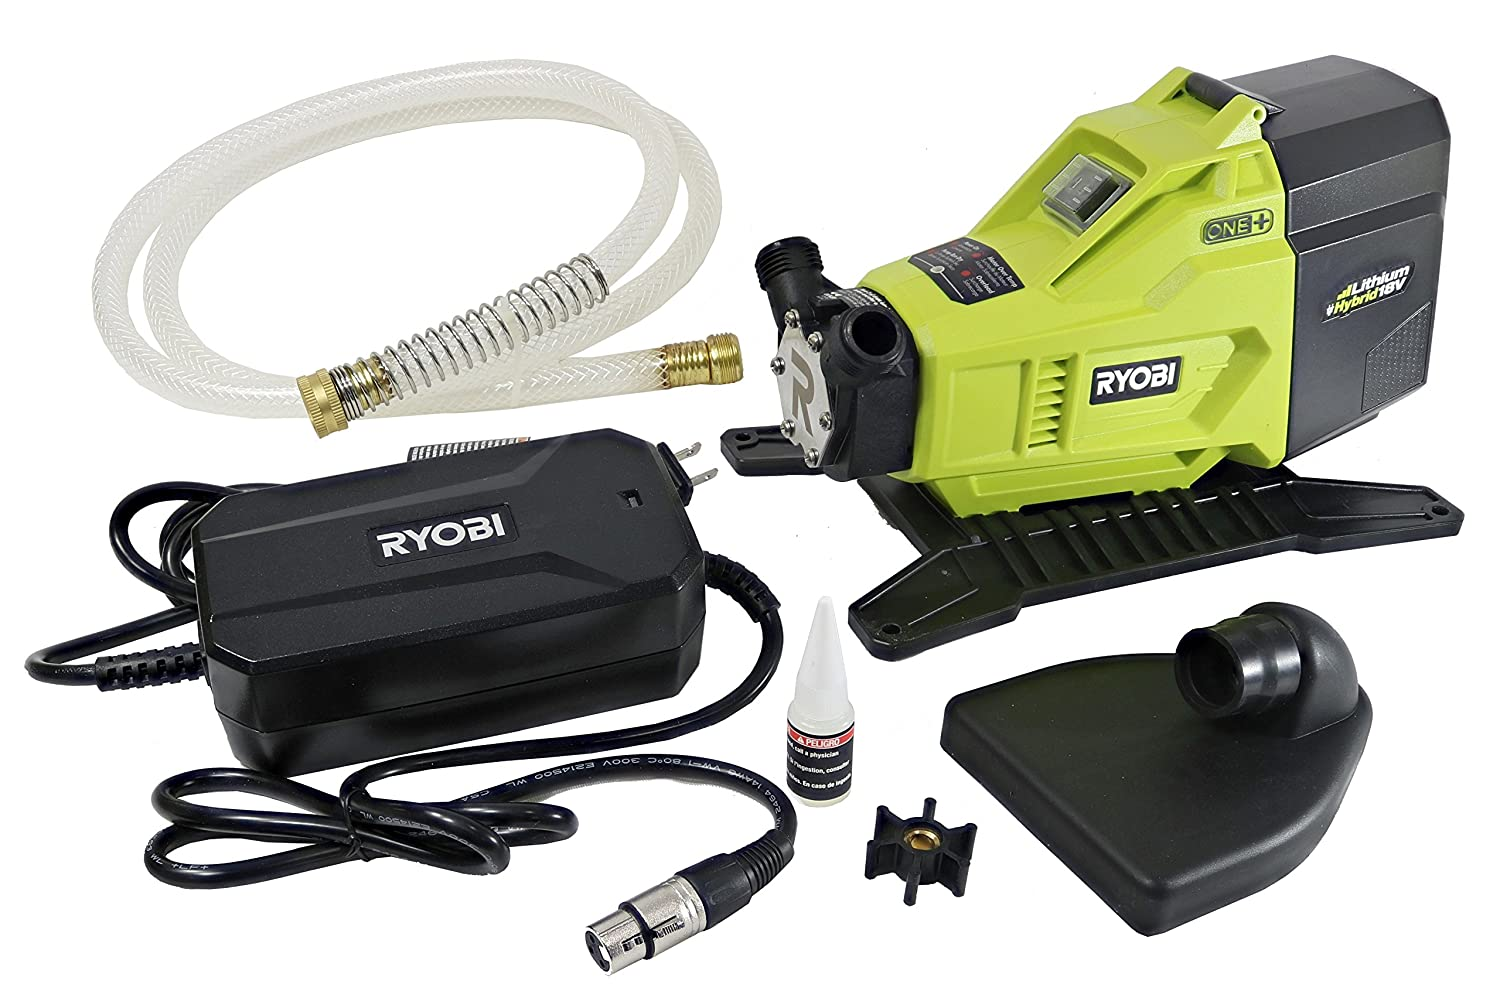 Ryobi P750 One+ 18V Hybrid Lithium Ion Battery or 120V AC Powered Portable Potable Water Transfer Pump (Battery Not Included, Tool Only)